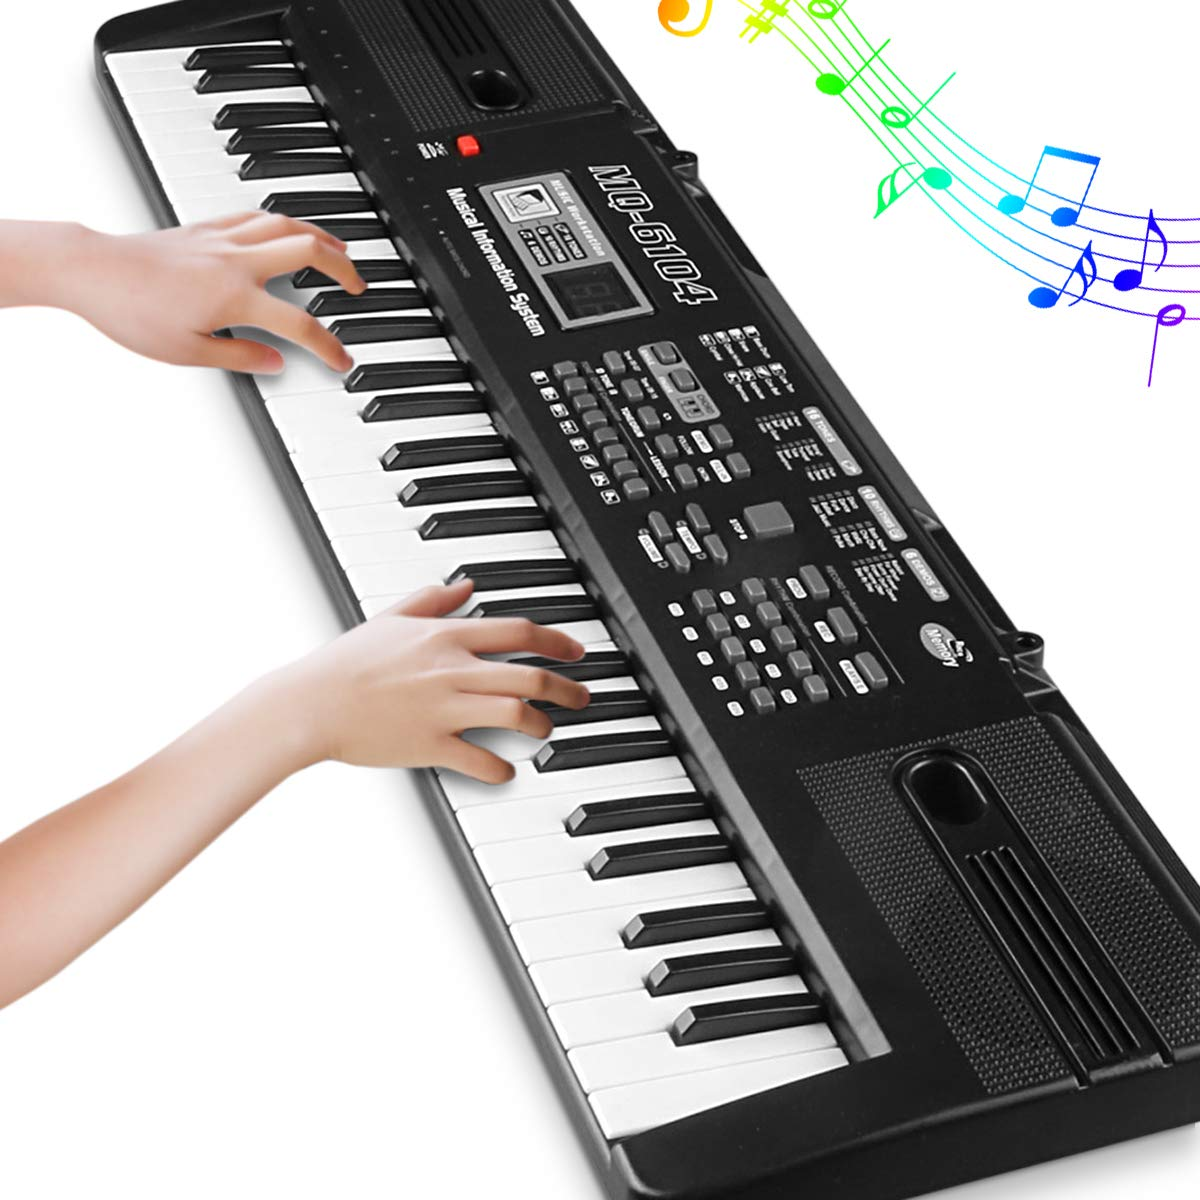 Digital Music Piano Keyboard 61 Key - Portable Electronic Musical Instrument with Microphone Kids Piano Musical Teaching Keyboard Toy For Birthday Christmas Festival Gift by Tencoz